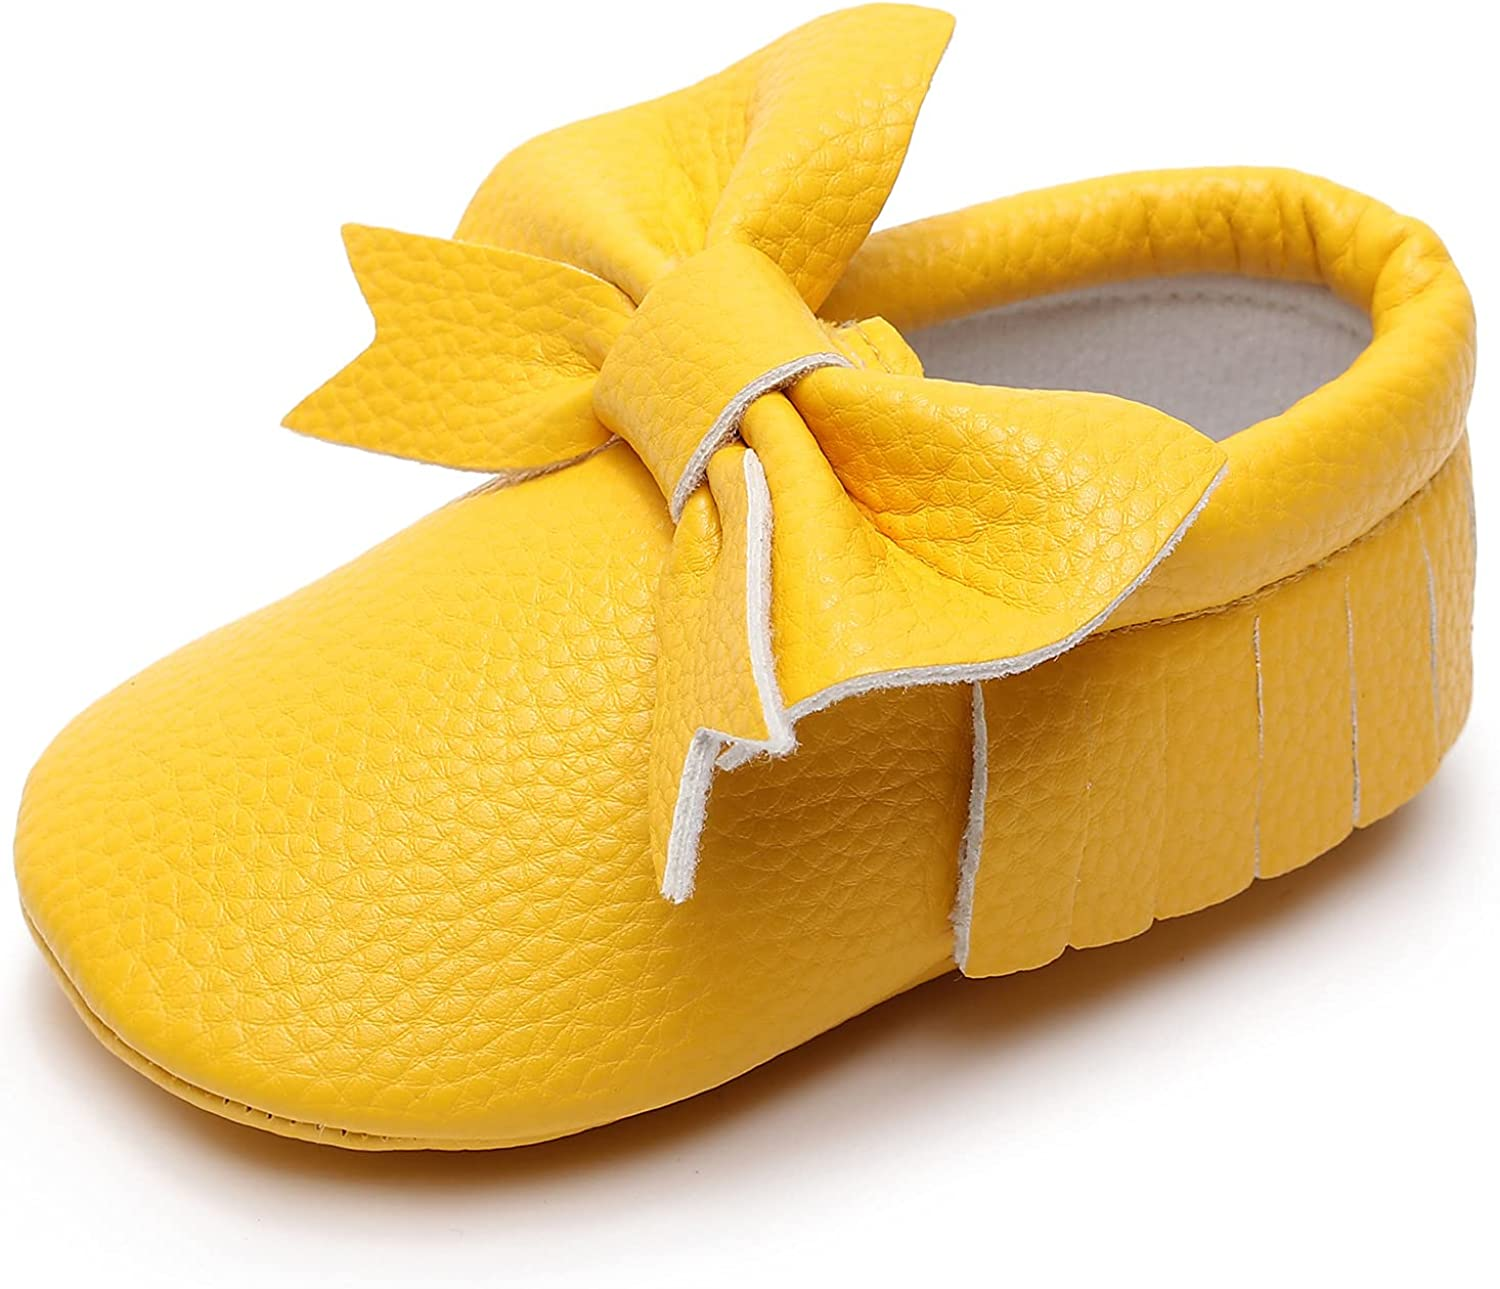 Beautiful Leather Moccasins with Bowknot and Fringe Little Boys and Girls Shoes with Soft Durable and Comfortable Sole for Infants/Toddlers/First Walker.